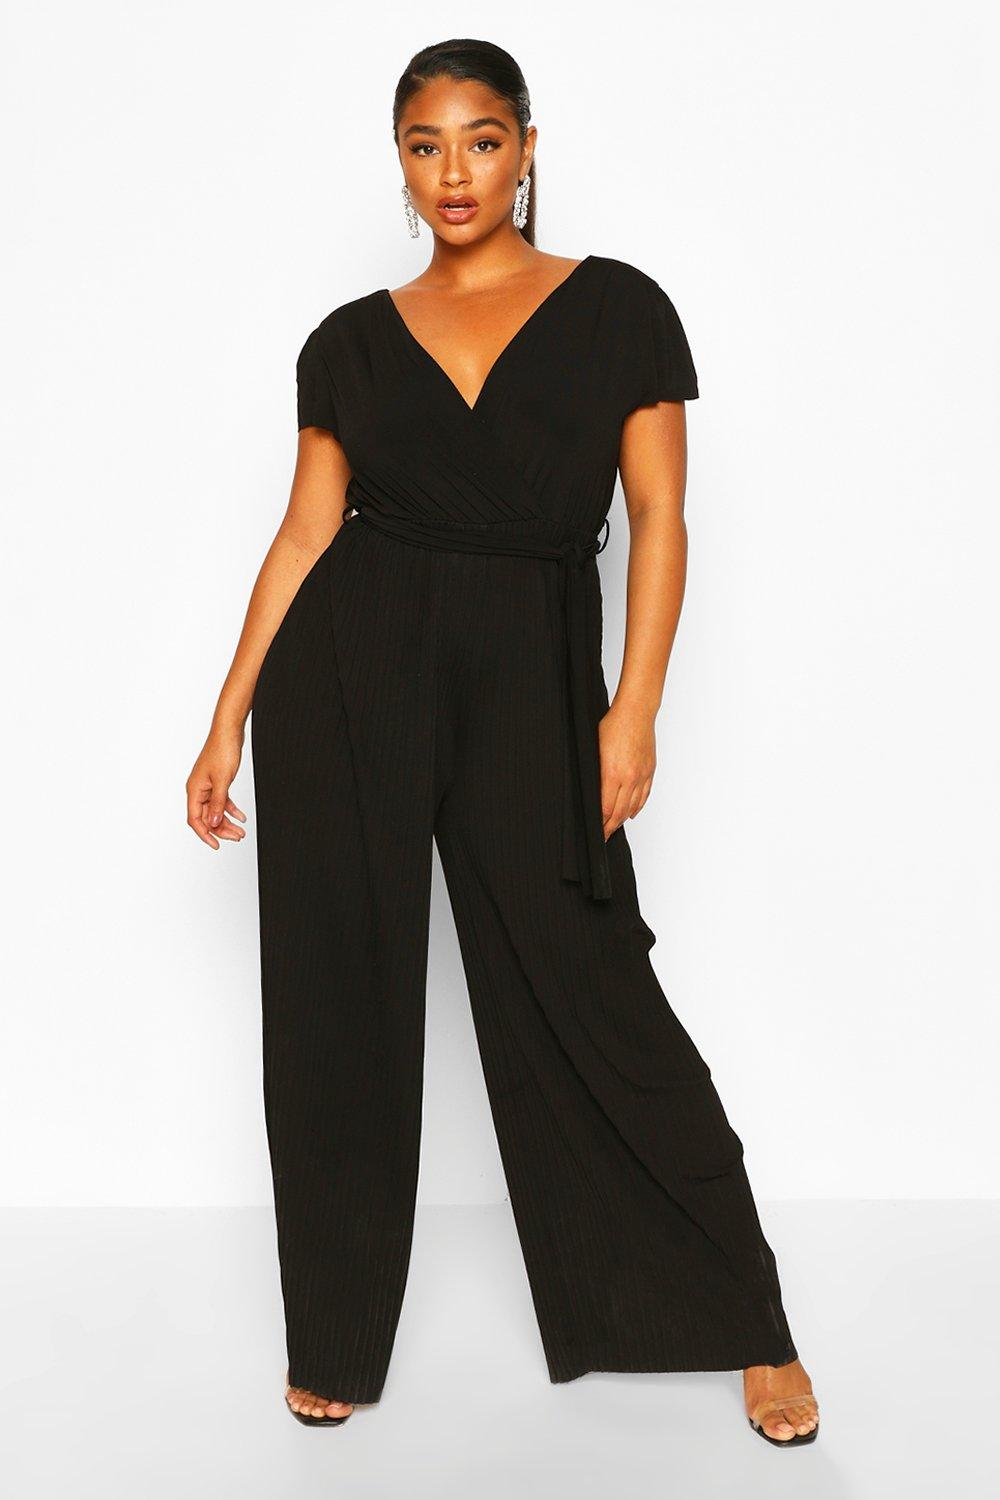 boohoo Womens Plus Wrap Front Pleated Wide Leg Jumpsuit - Black - 20, Black